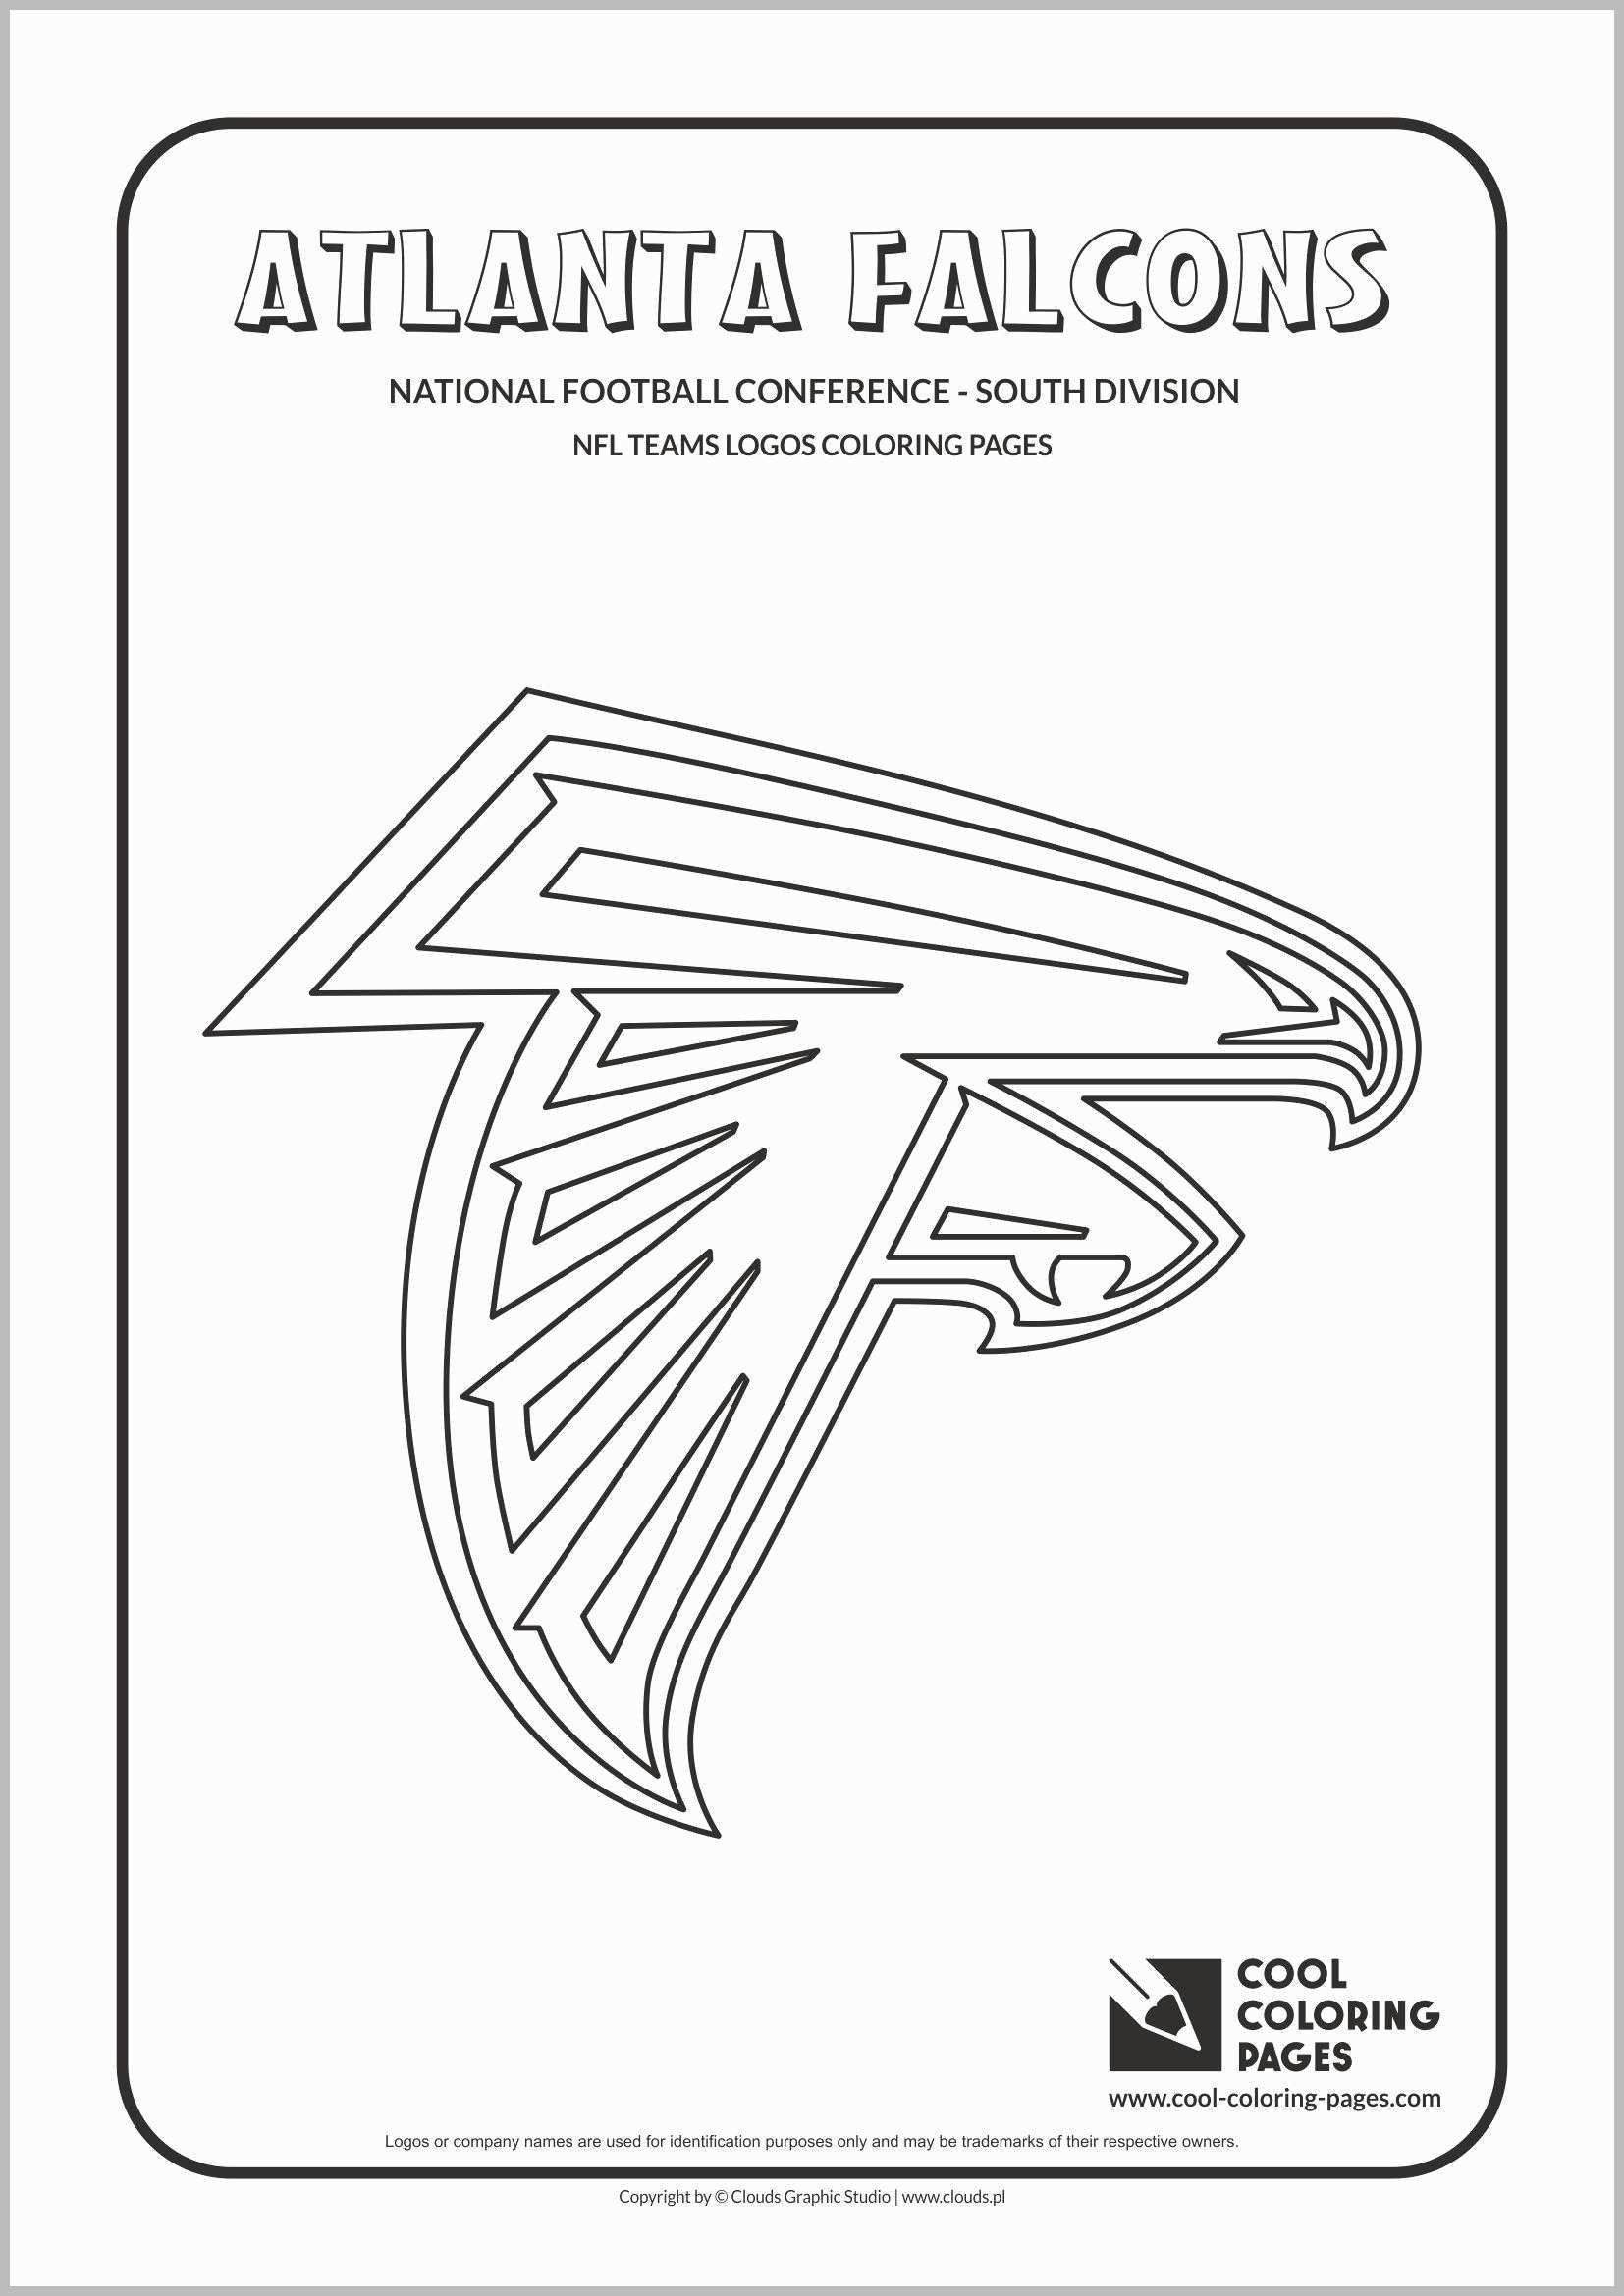 Excellent Picture Of Falcon Coloring Pages Davemelillo Com Football Coloring Pages Atlanta Falcons Nfl Teams Logos